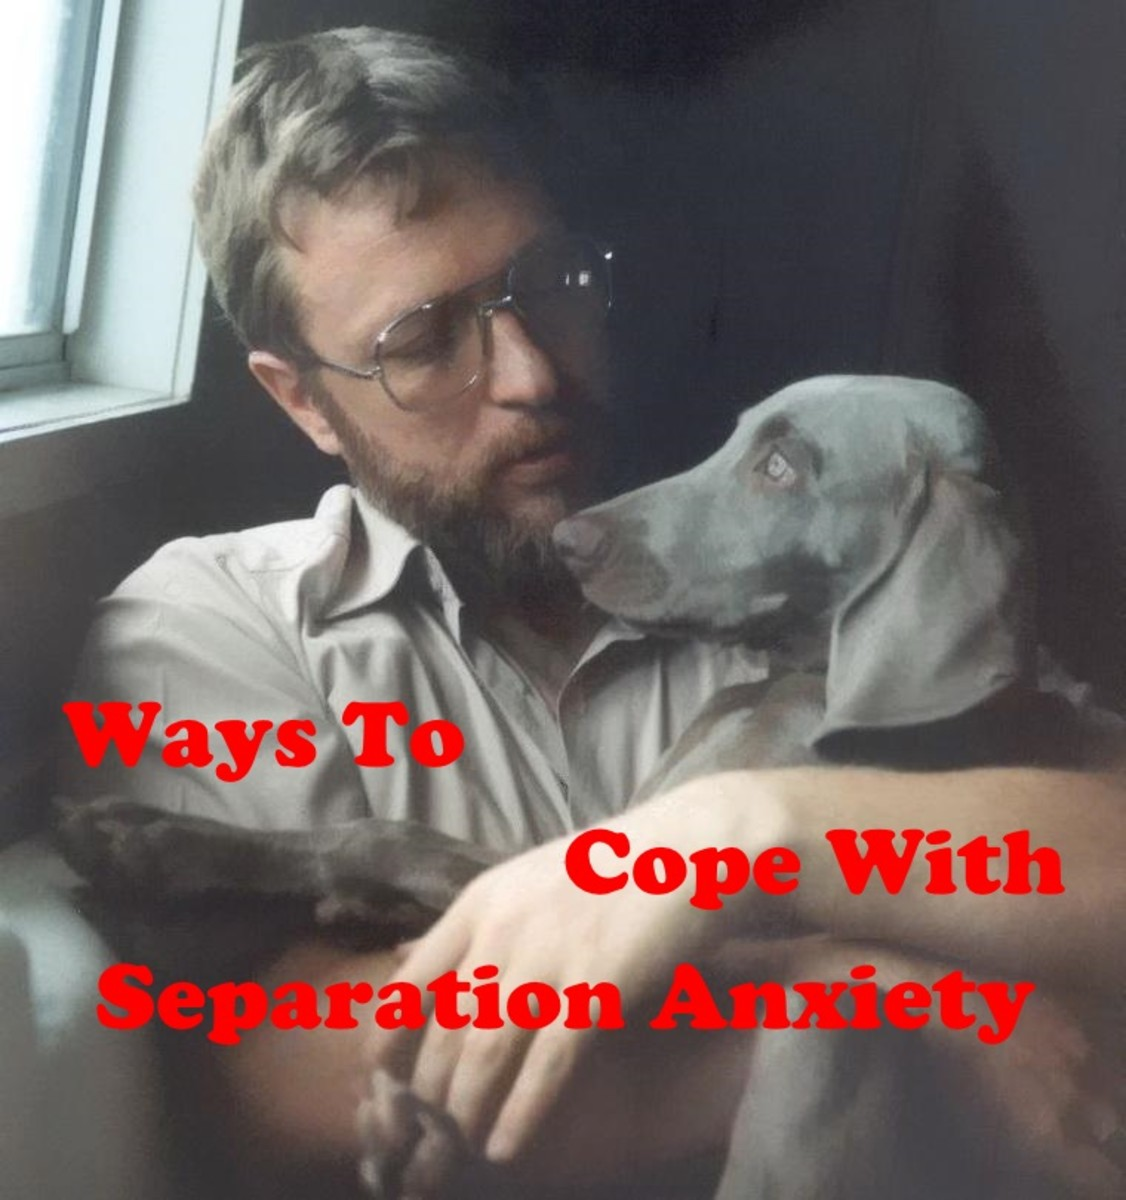 Tips to deal with separtion anxiety, no matter what size dog.